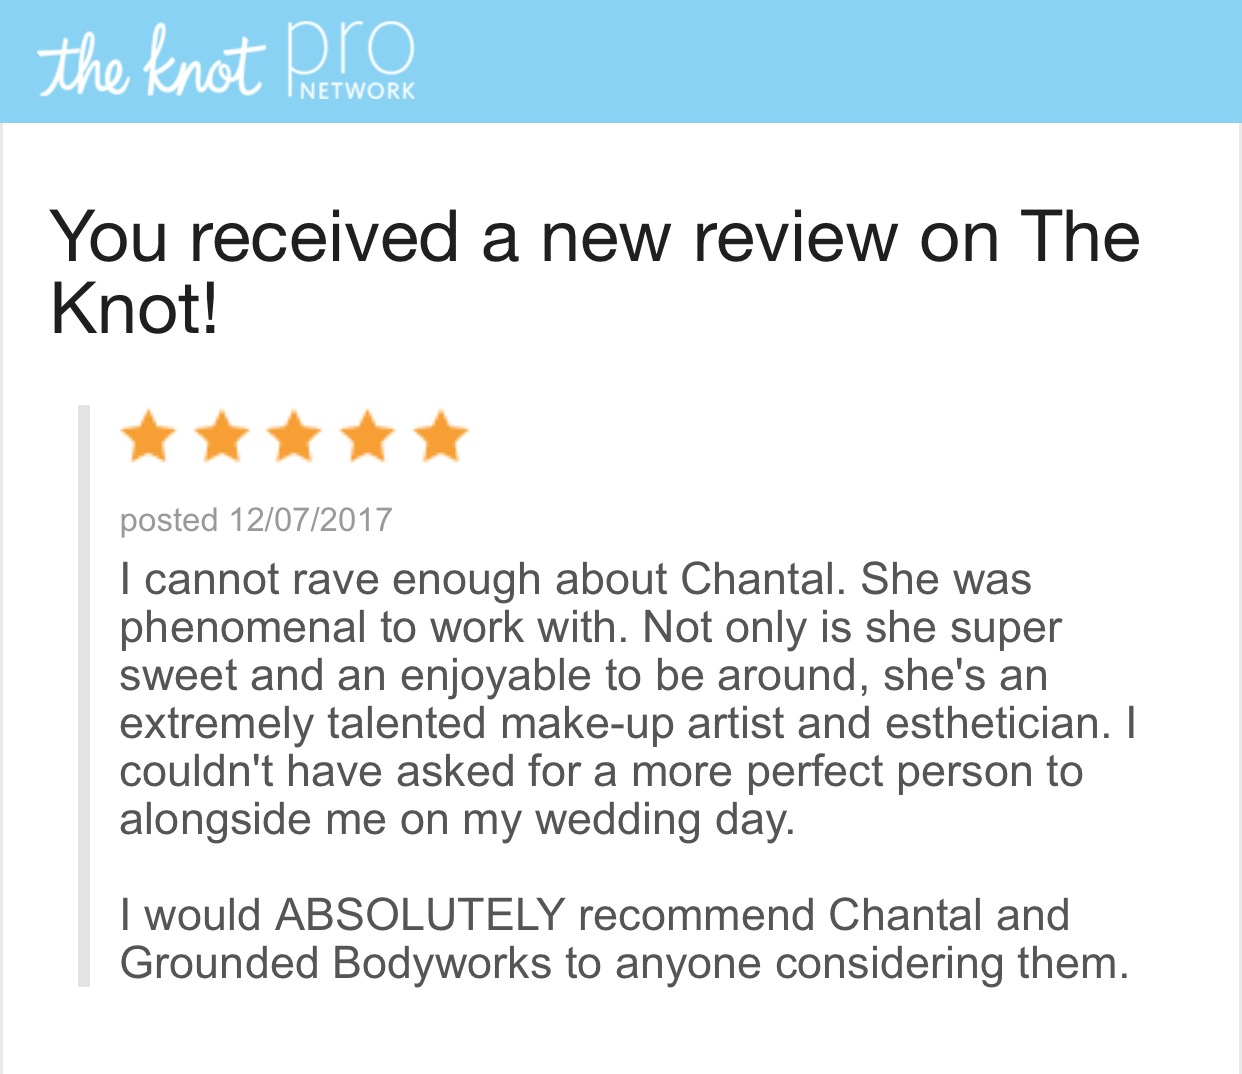 chantal - bringing only the best care to you on your best day!